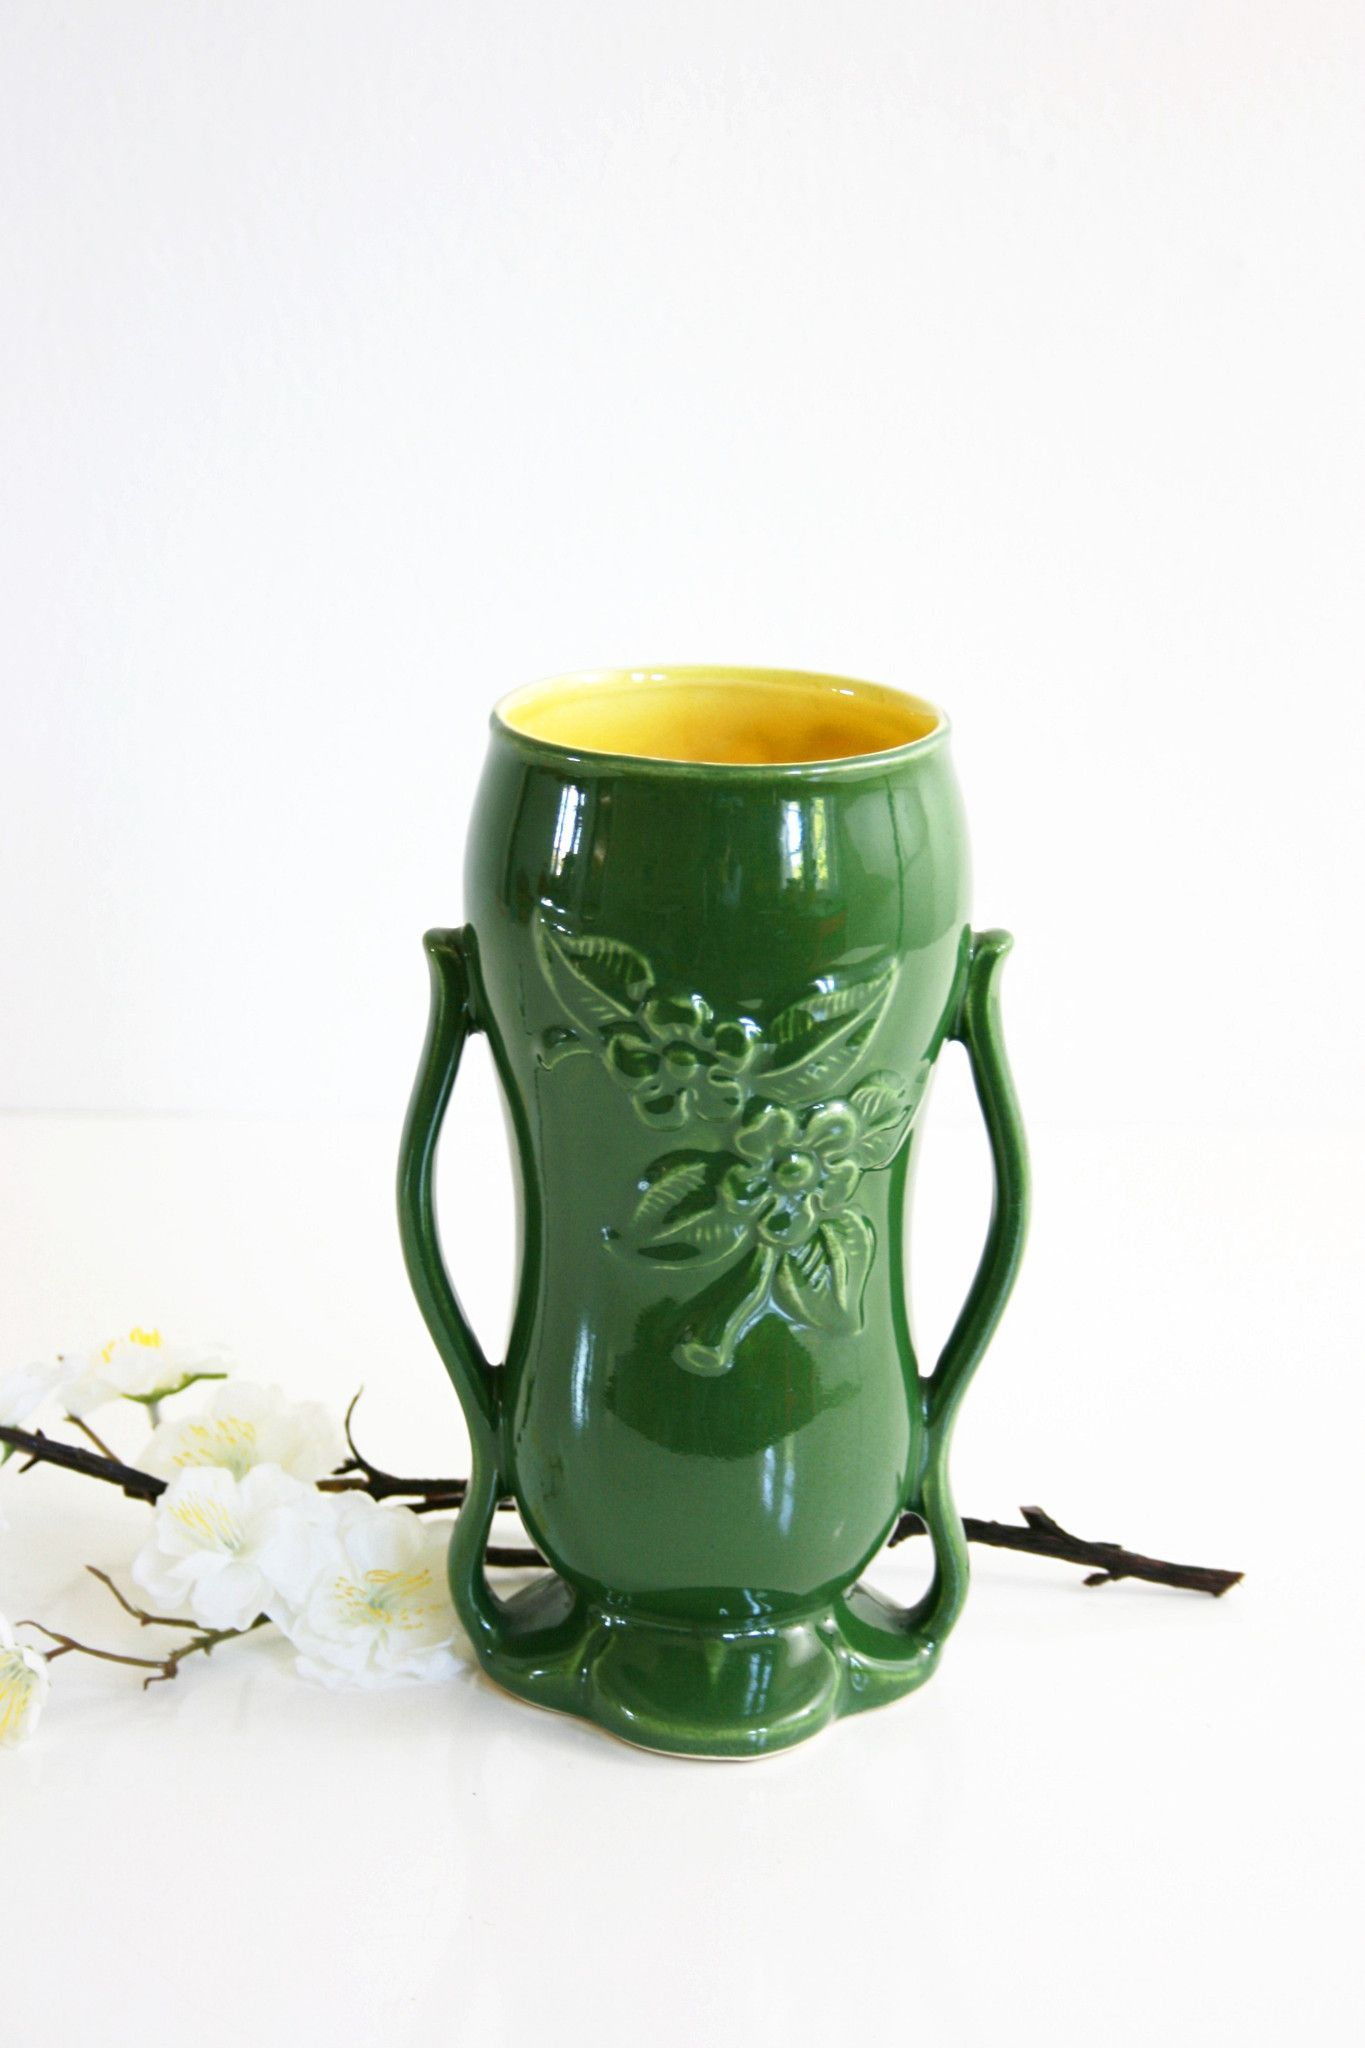 Vintage mid century red wing pottery vase in green and yellow vintage mid century red wing pottery vase in green and yellow reviewsmspy